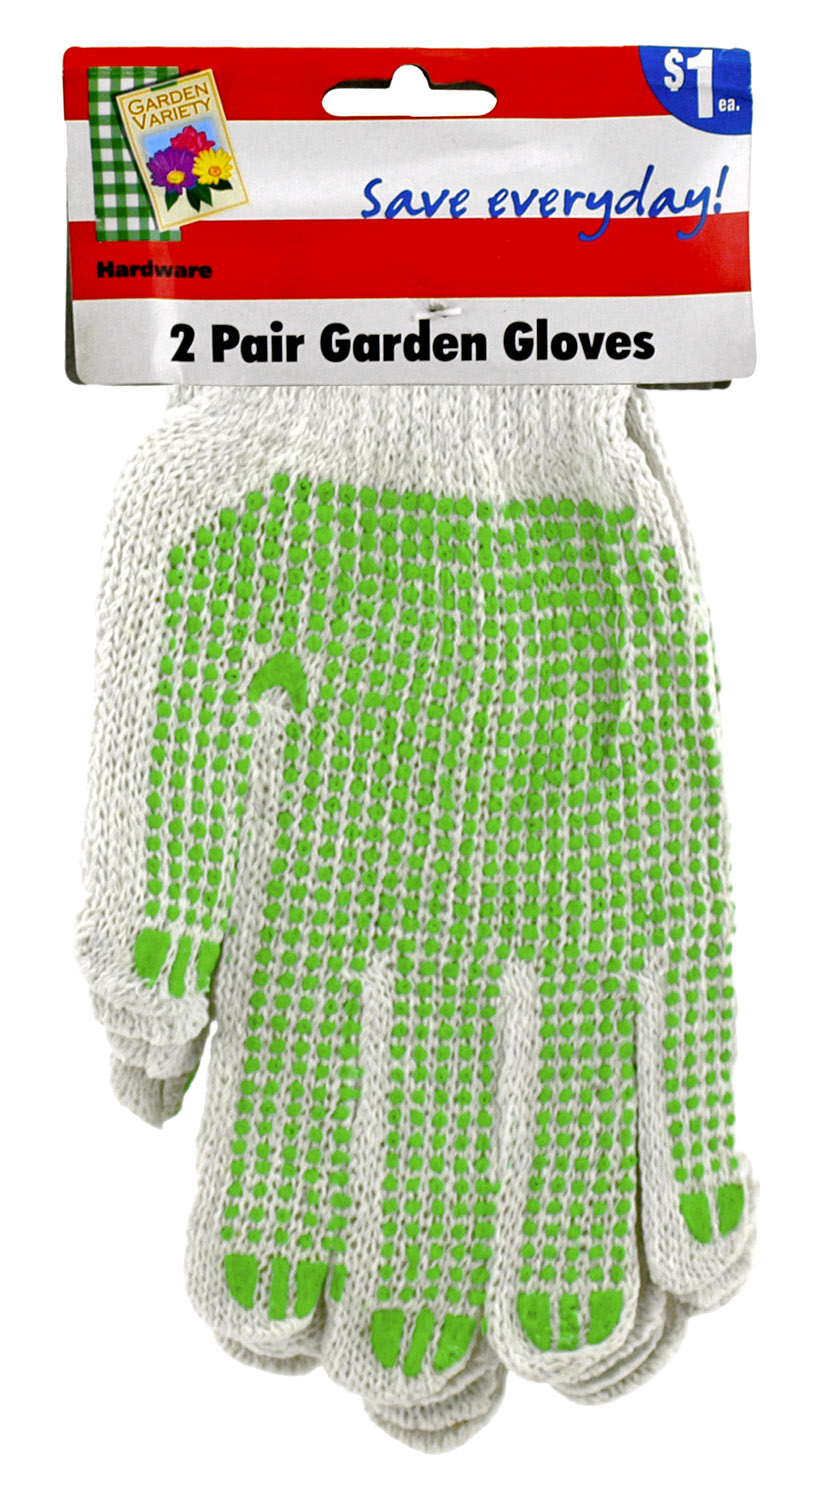 1 Dozen Pairs of Gripper Gardening Gloves